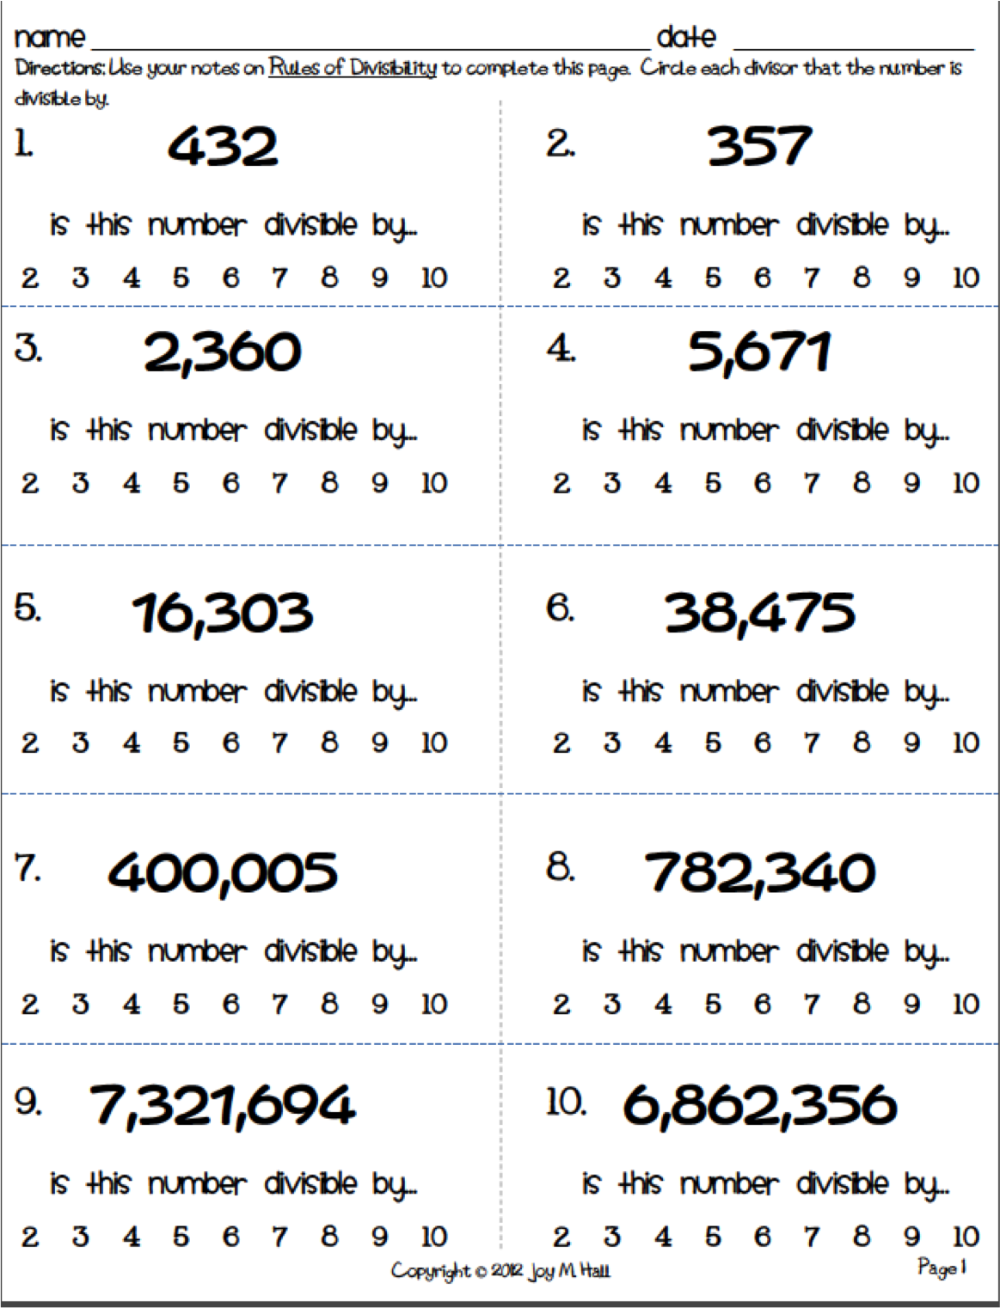 Divisibility Rules Worksheet Pdf   Divisibility rules [ 1308 x 1000 Pixel ]